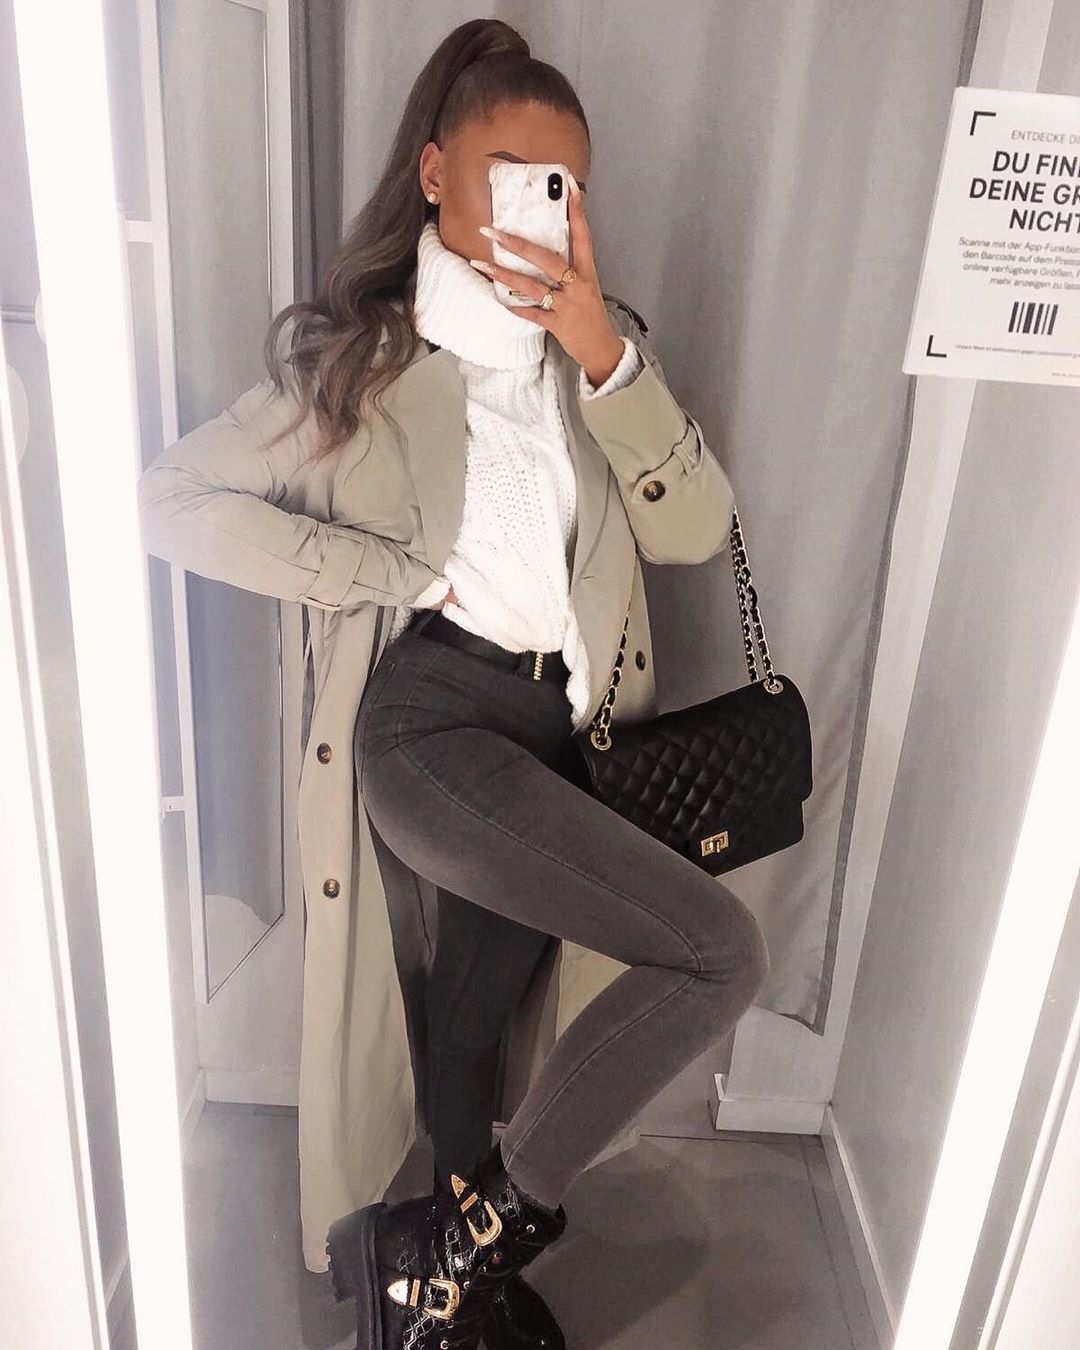 """SHARLINE DAVIDSEN on Instagram: """"*Werbung/Advertising 